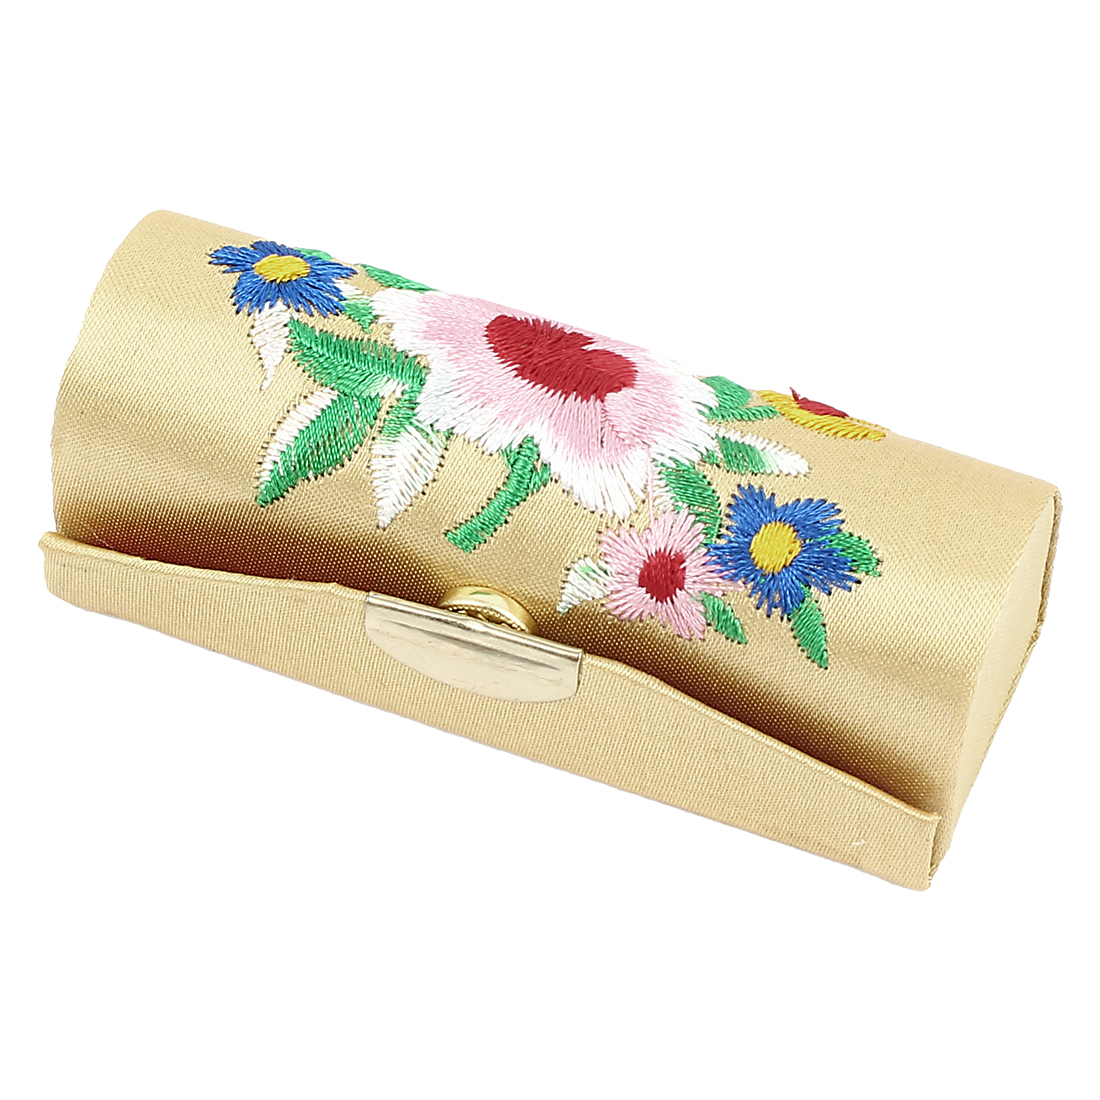 Lady Floral Embroidery Mirror Lipstick Lip Balm Chap Stick Case Container Holder Beige